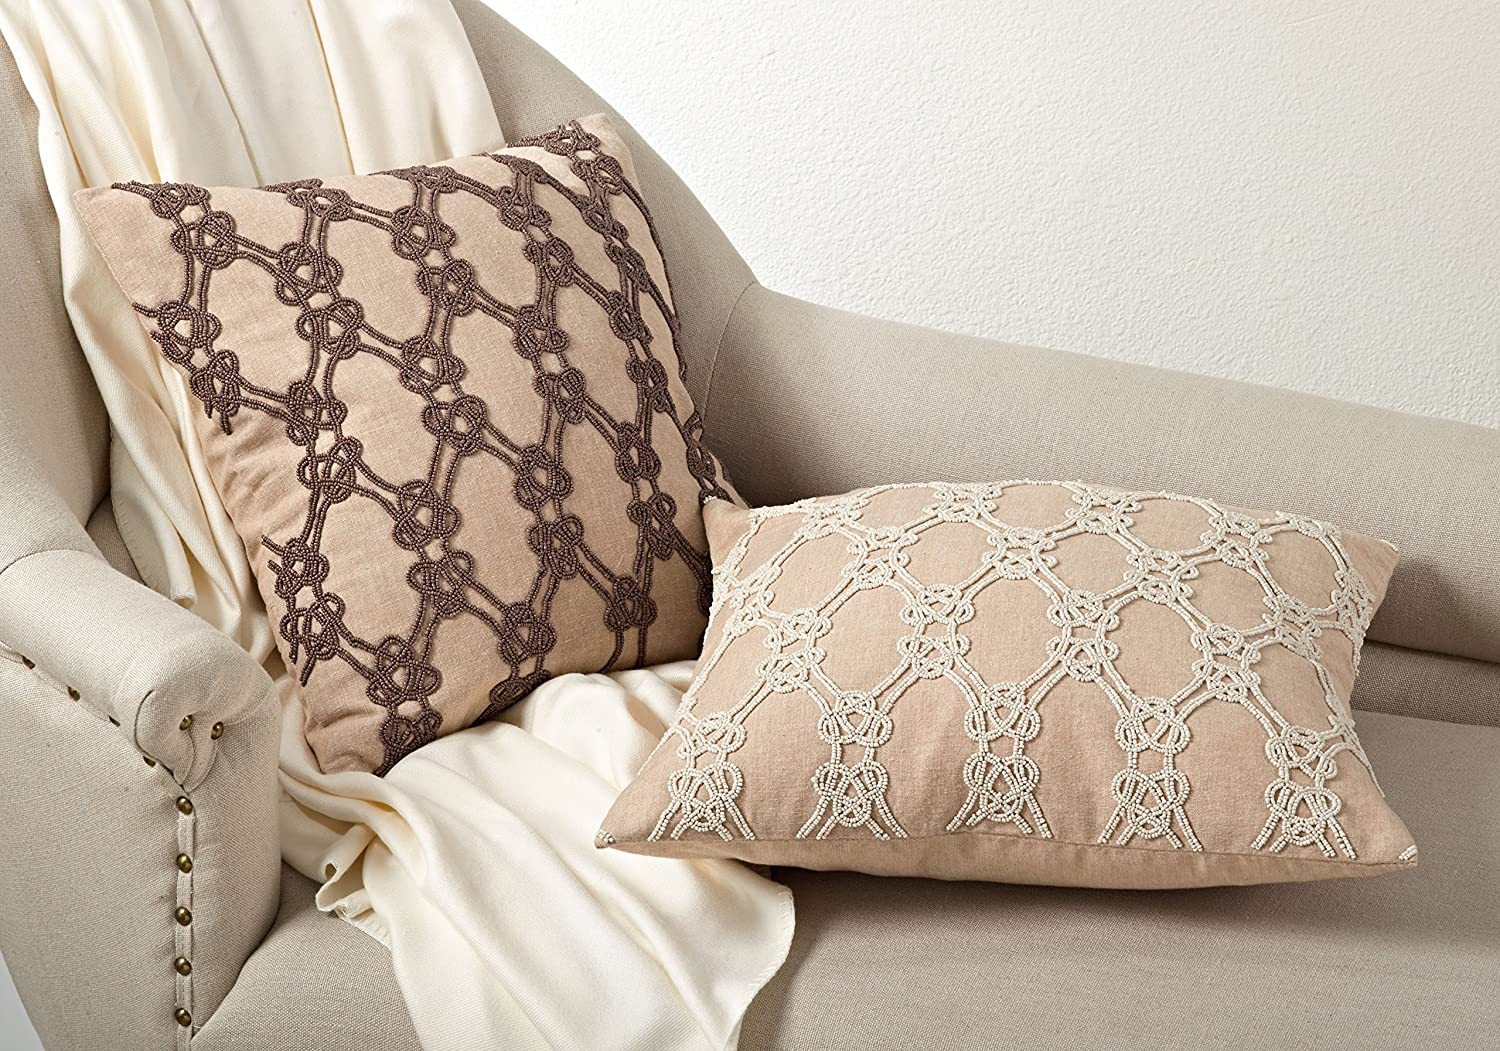 Vanilla 18 Square SARO LIFESTYLE 588 Ganda Collection Cotton Beaded Knotted Design Down Filled Throw Pillow